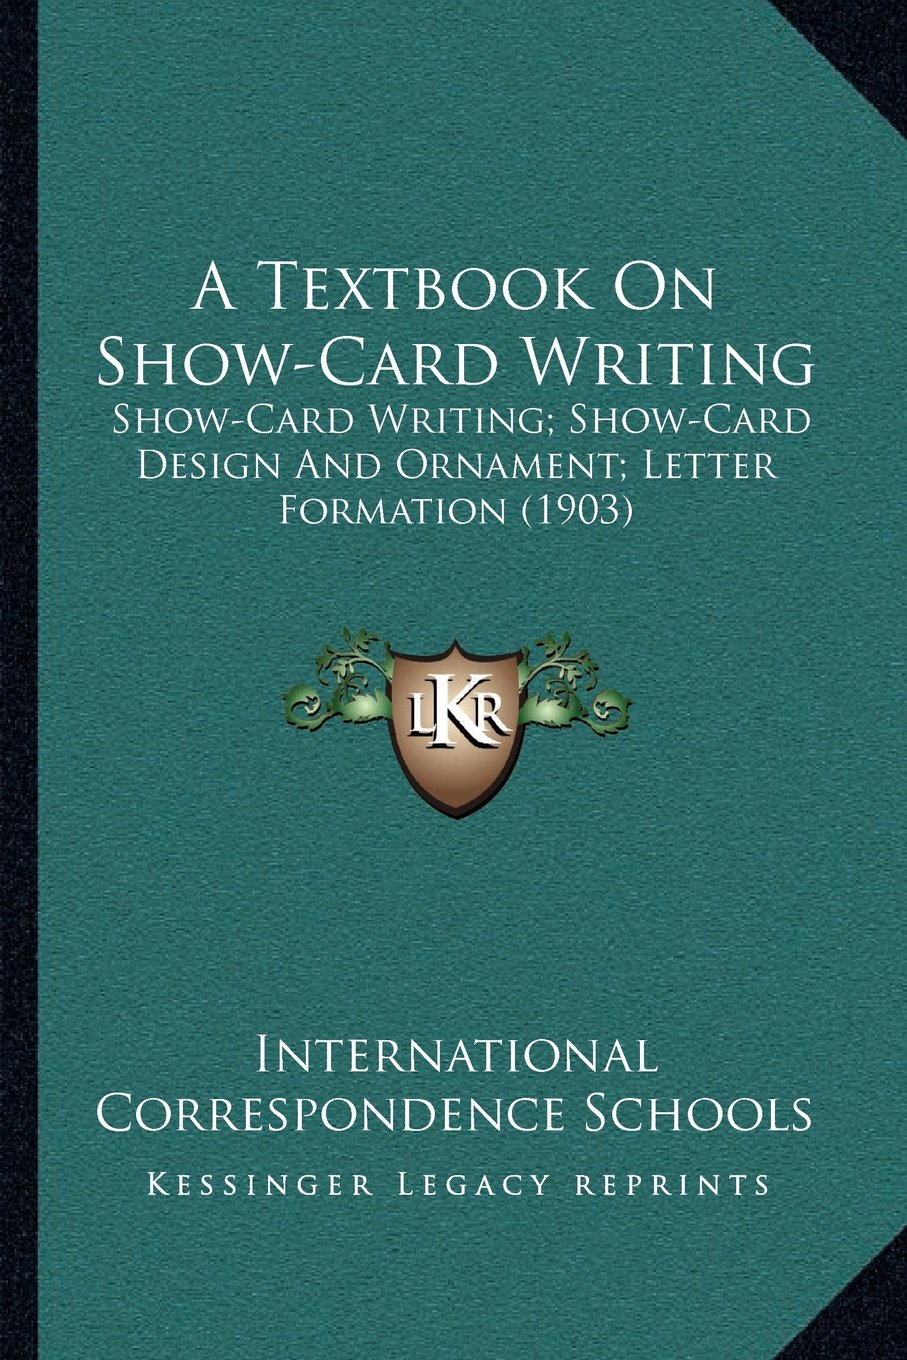 Download A Textbook On Show-Card Writing: Show-Card Writing; Show-Card Design And Ornament; Letter Formation (1903) PDF